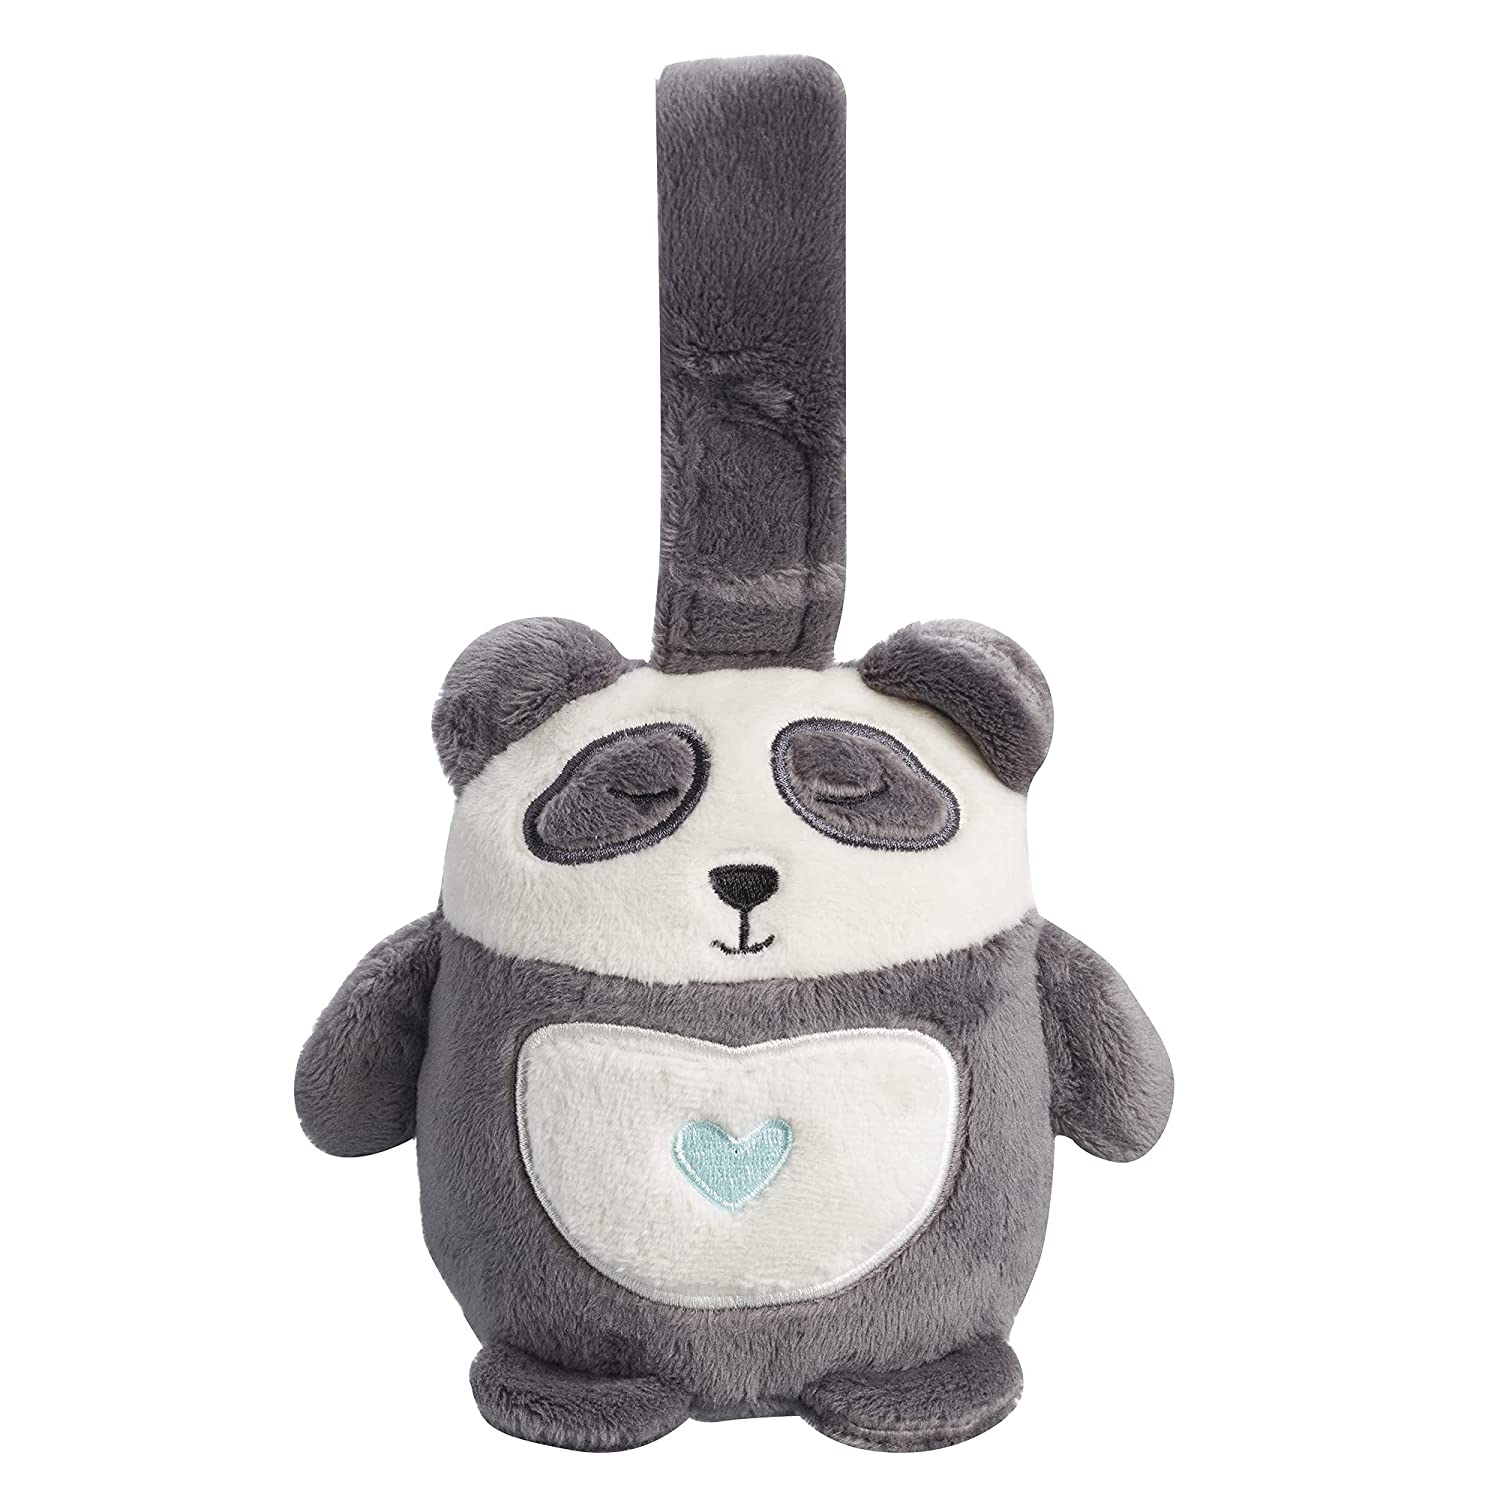 Beauty products Animer and price revision Tommee Tippee Mini Travel Baby Sleep Stuffed Animal Pip Aid Th -